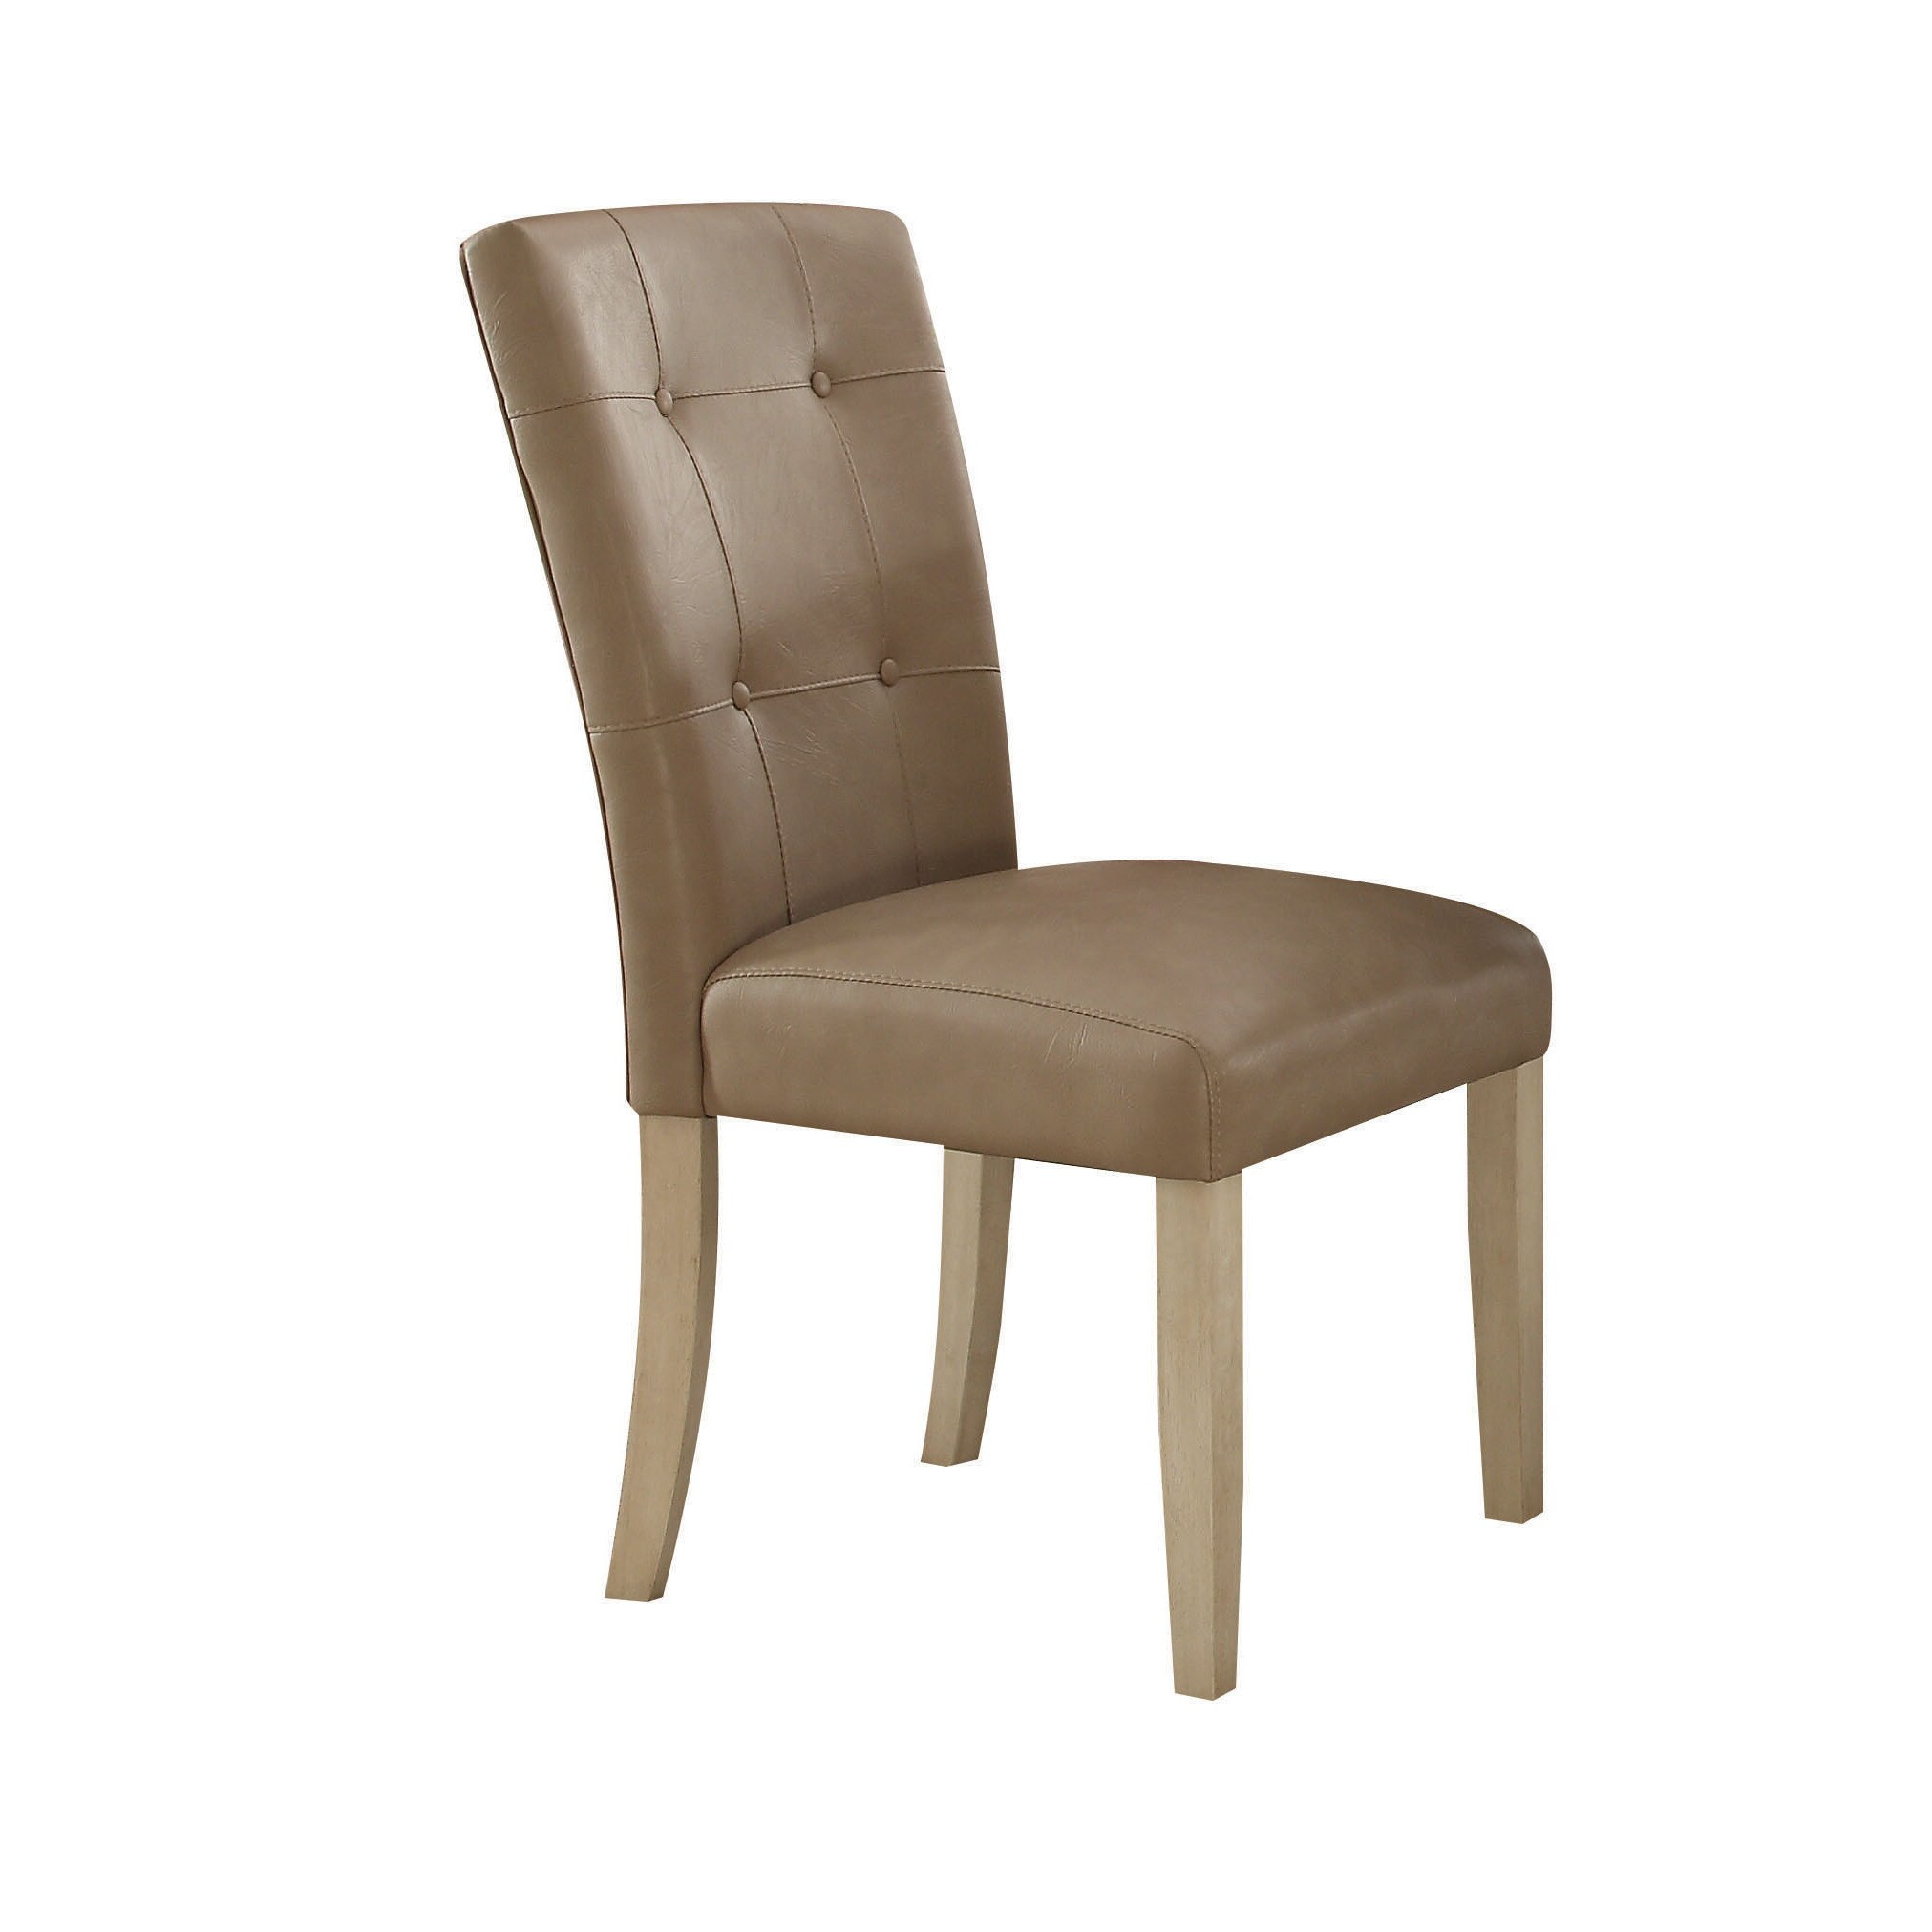 ACME Furniture Faymoor Dining Chair (Set-2), Cream (Ivory...